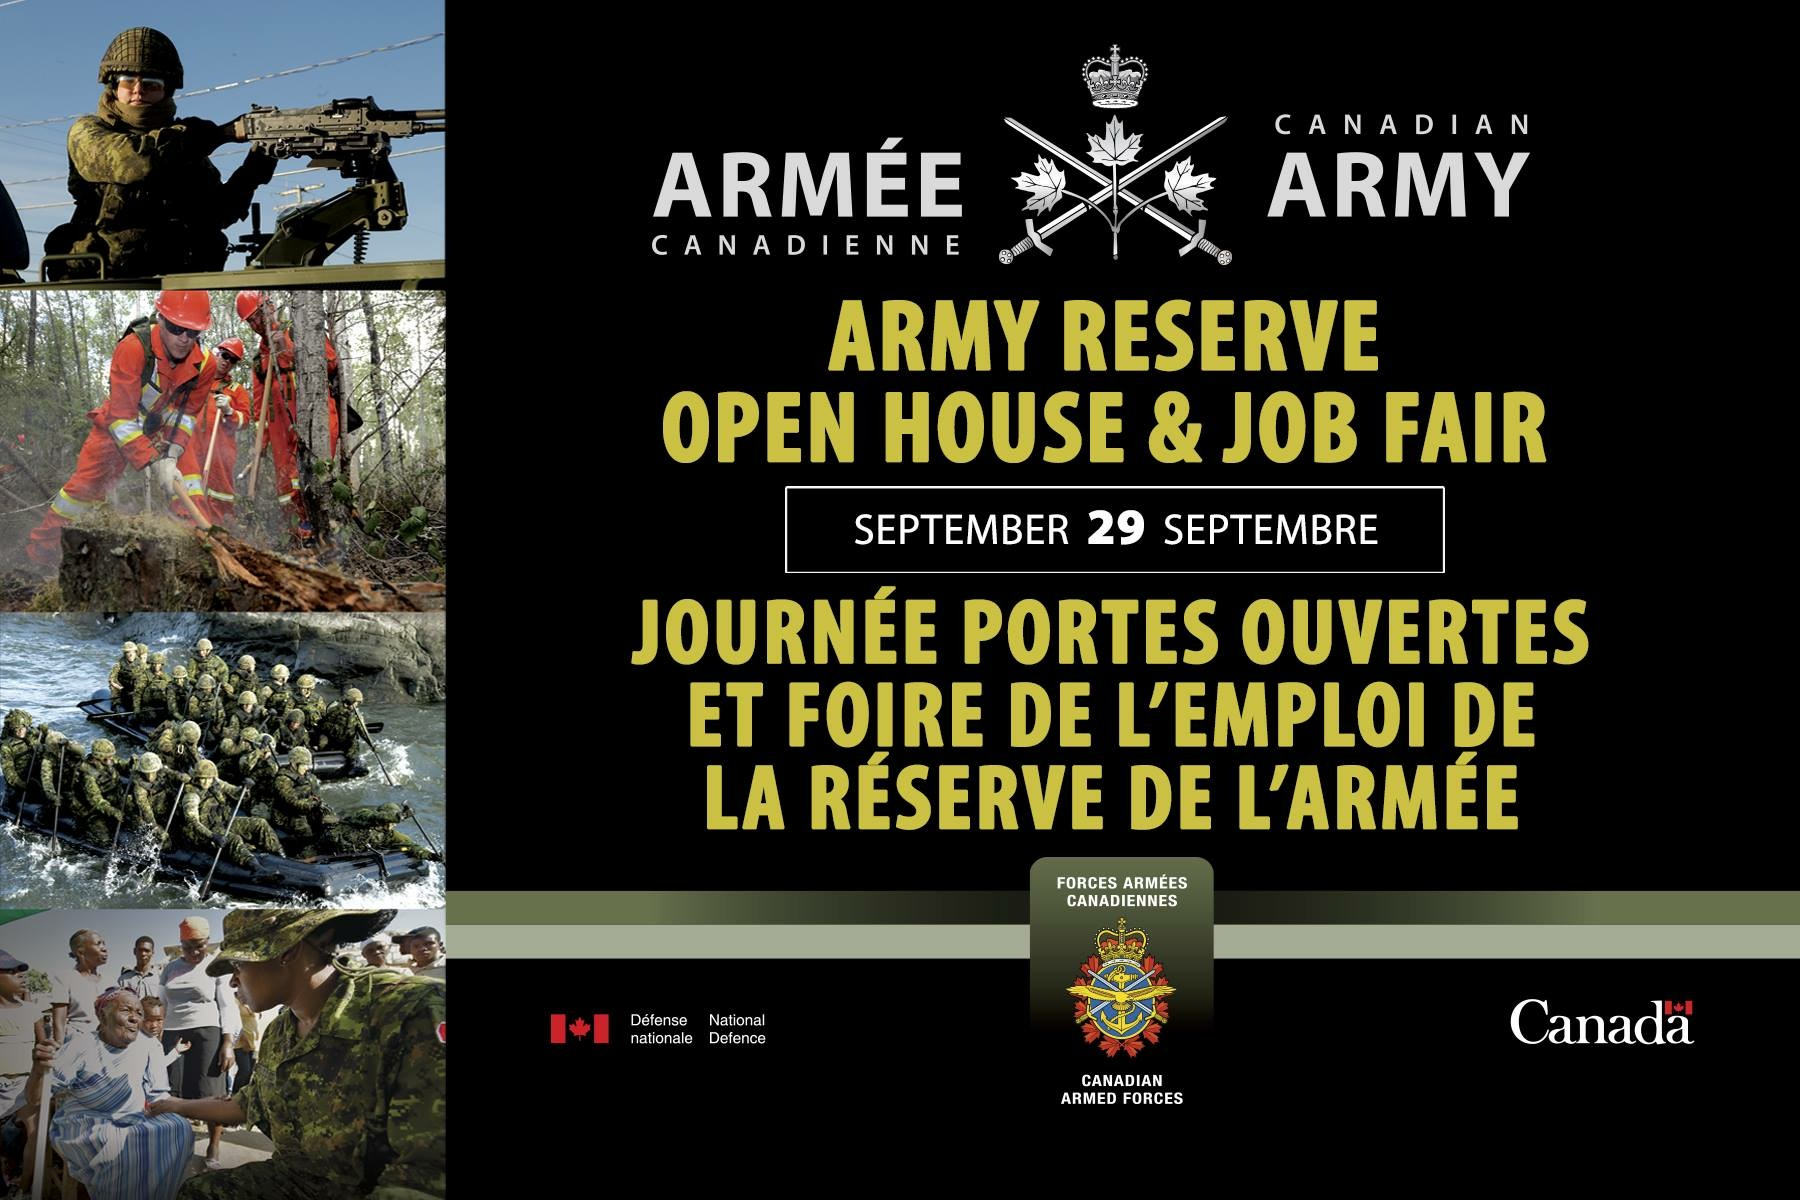 Army Reserve Open House